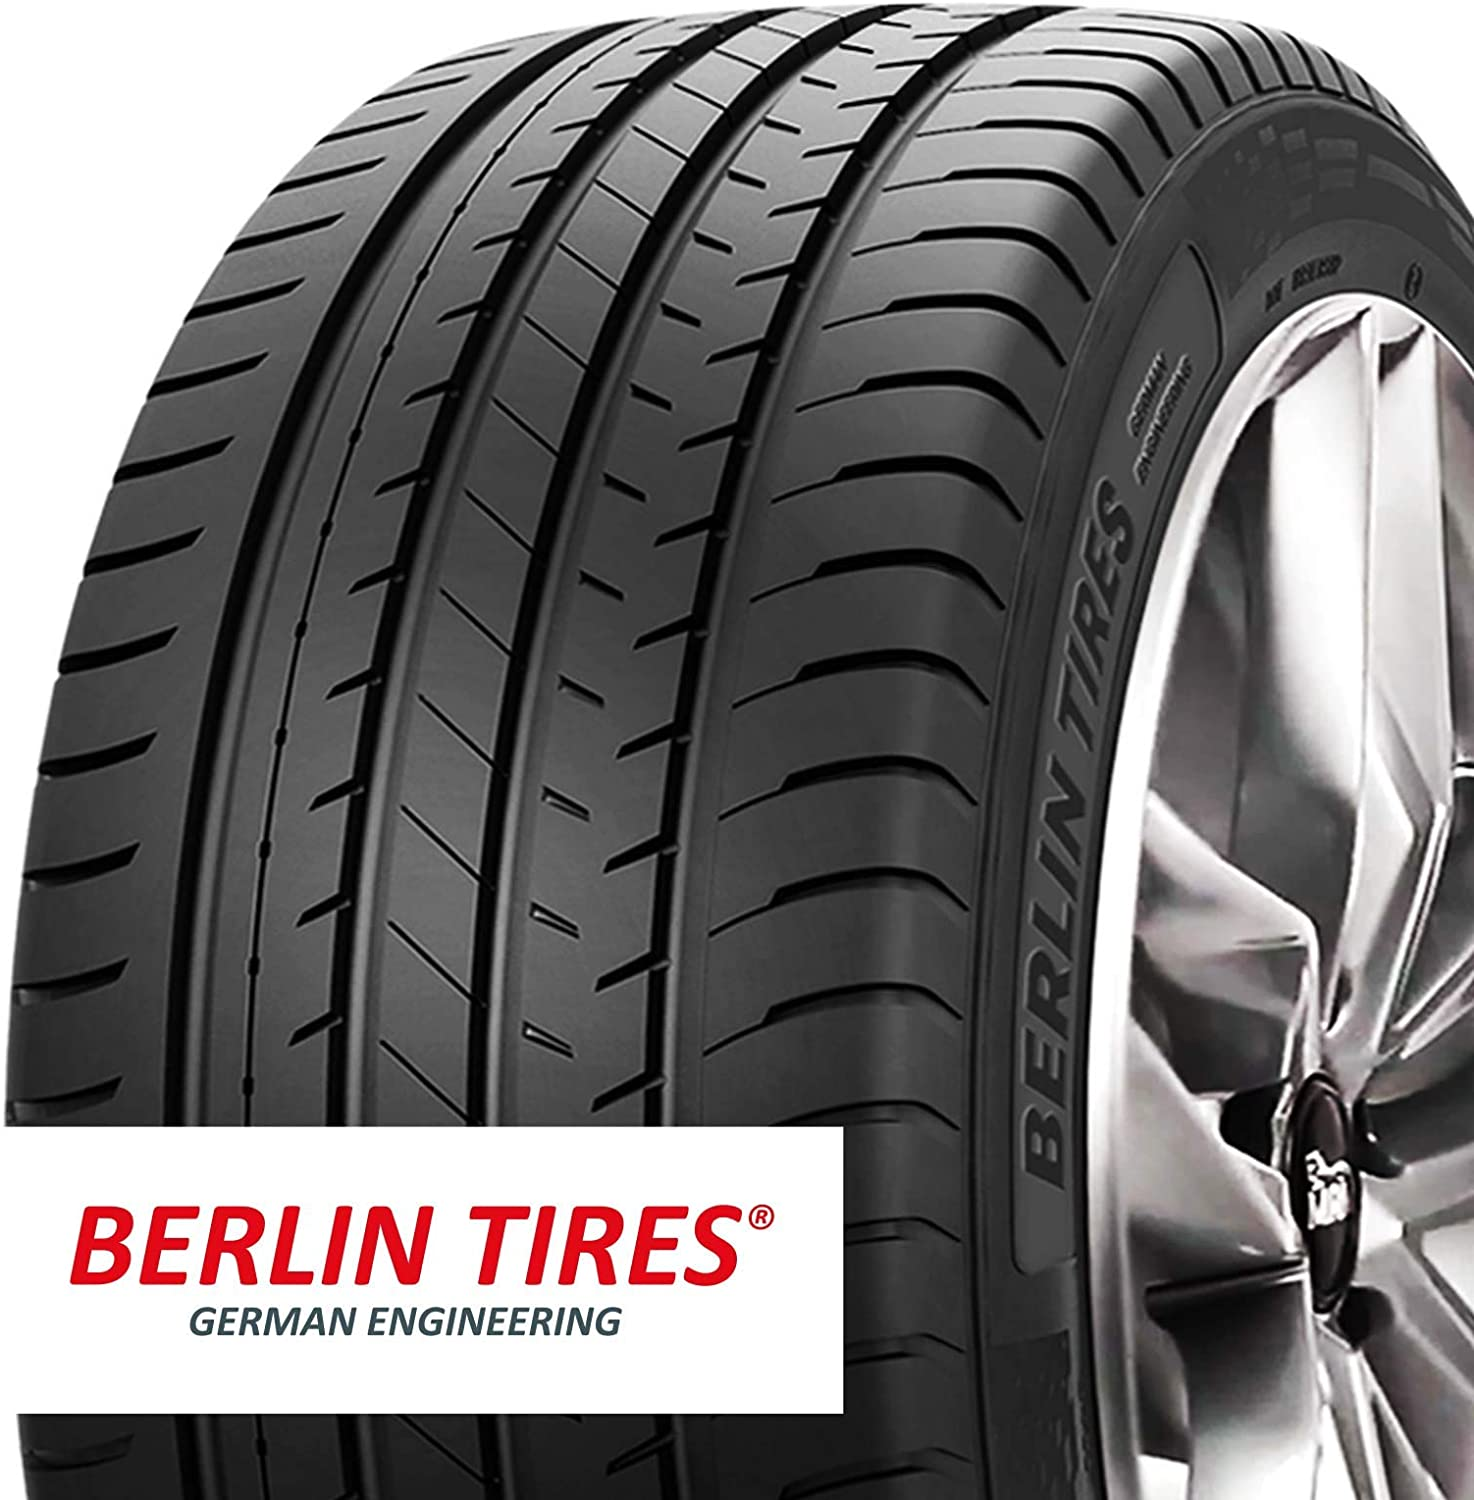 Berlin Tires Summer Uhp 1 Xl 225 45 18 95 W B C 72db Sommer Pkw Auto